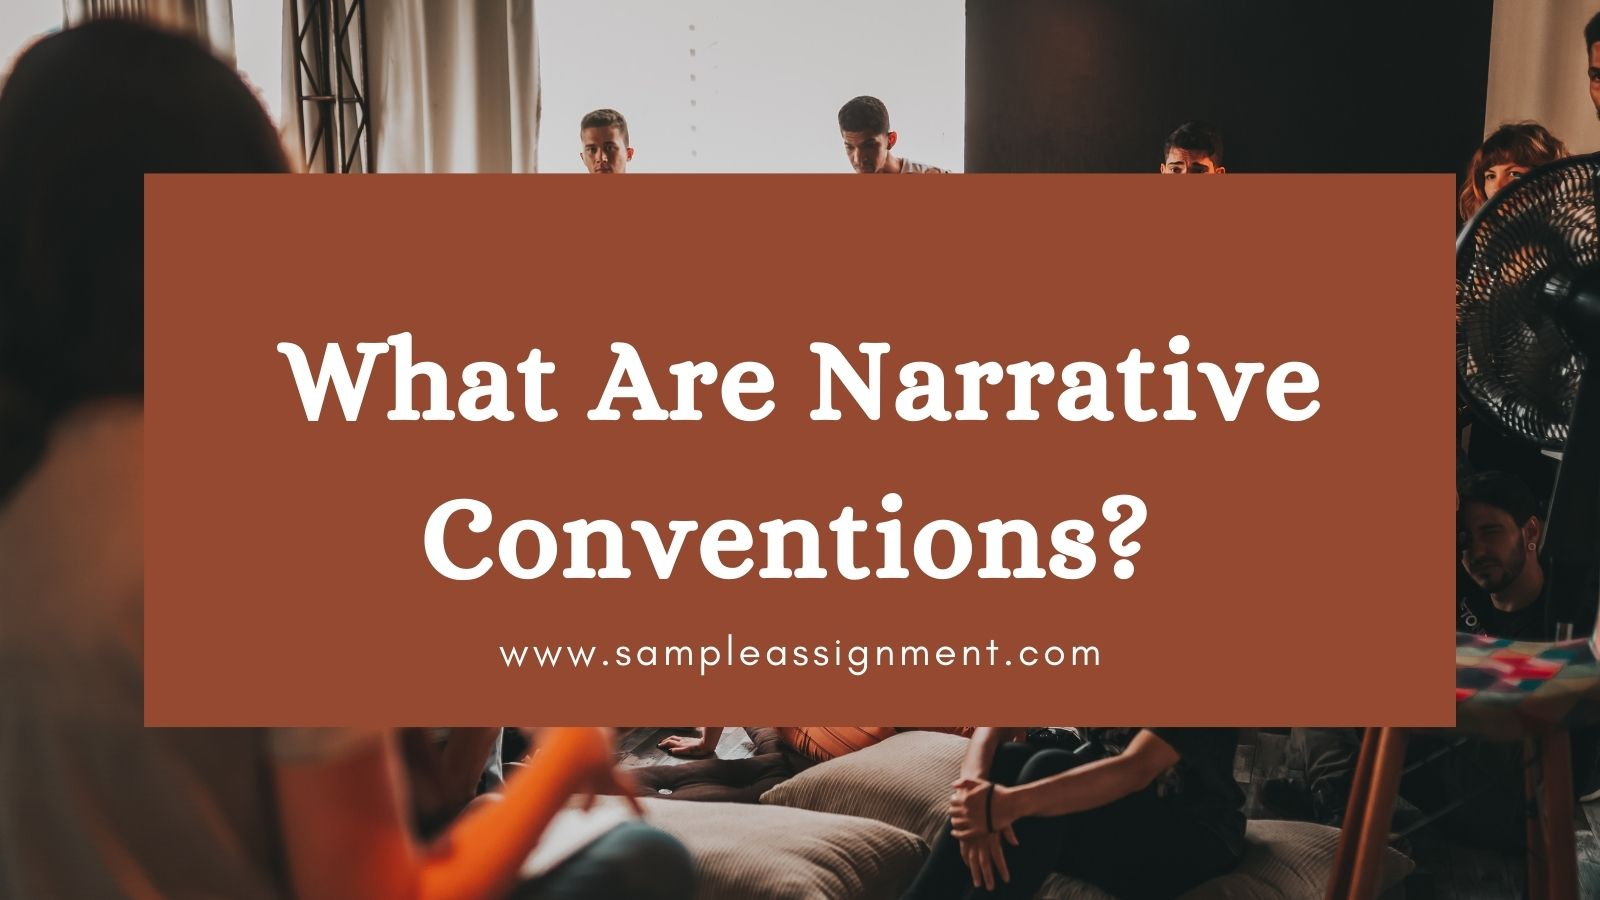 Narrative Conventions